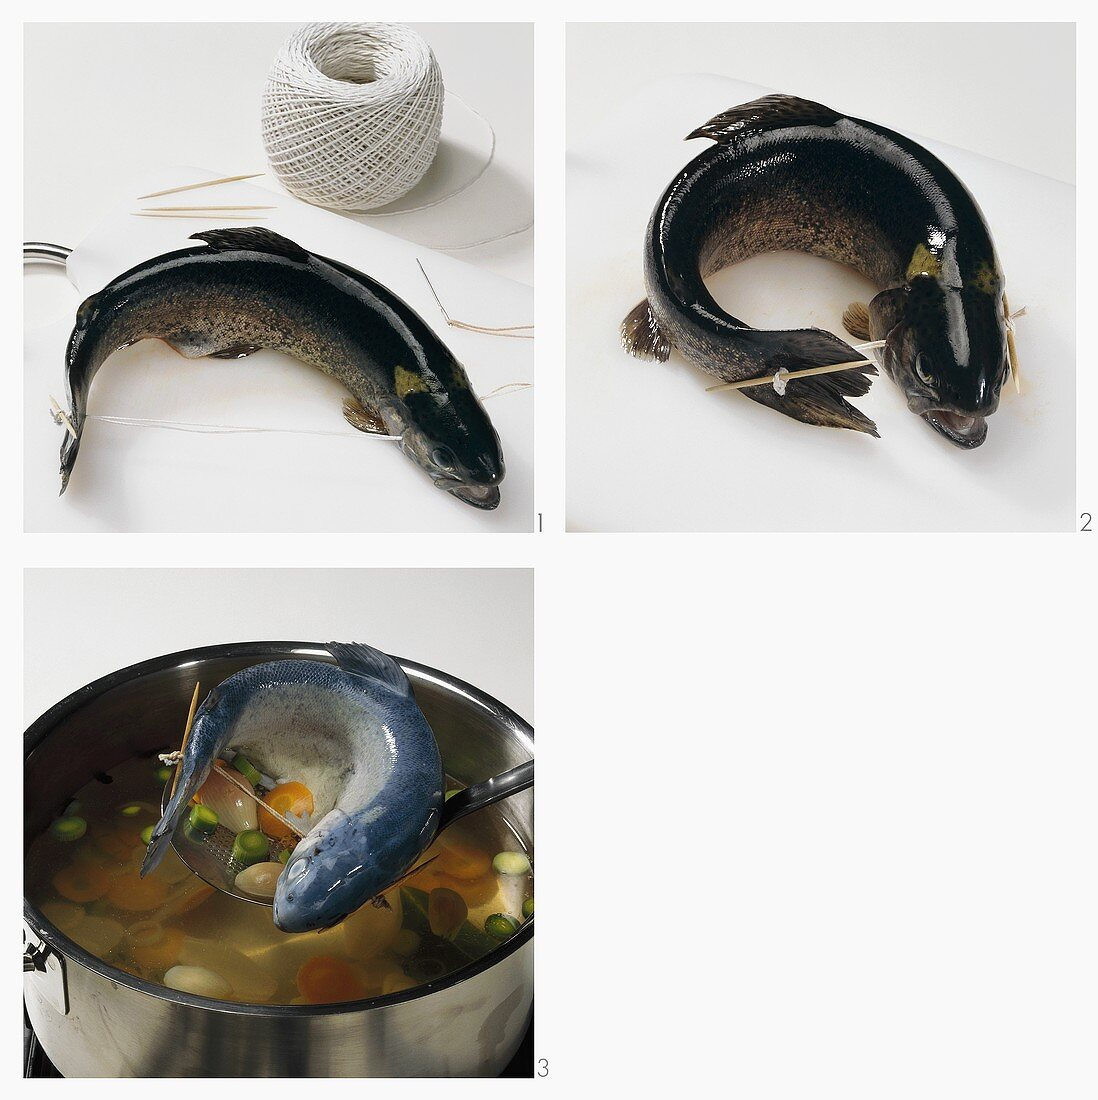 Cooking trout 'au bleu' (tied mouth to tail)